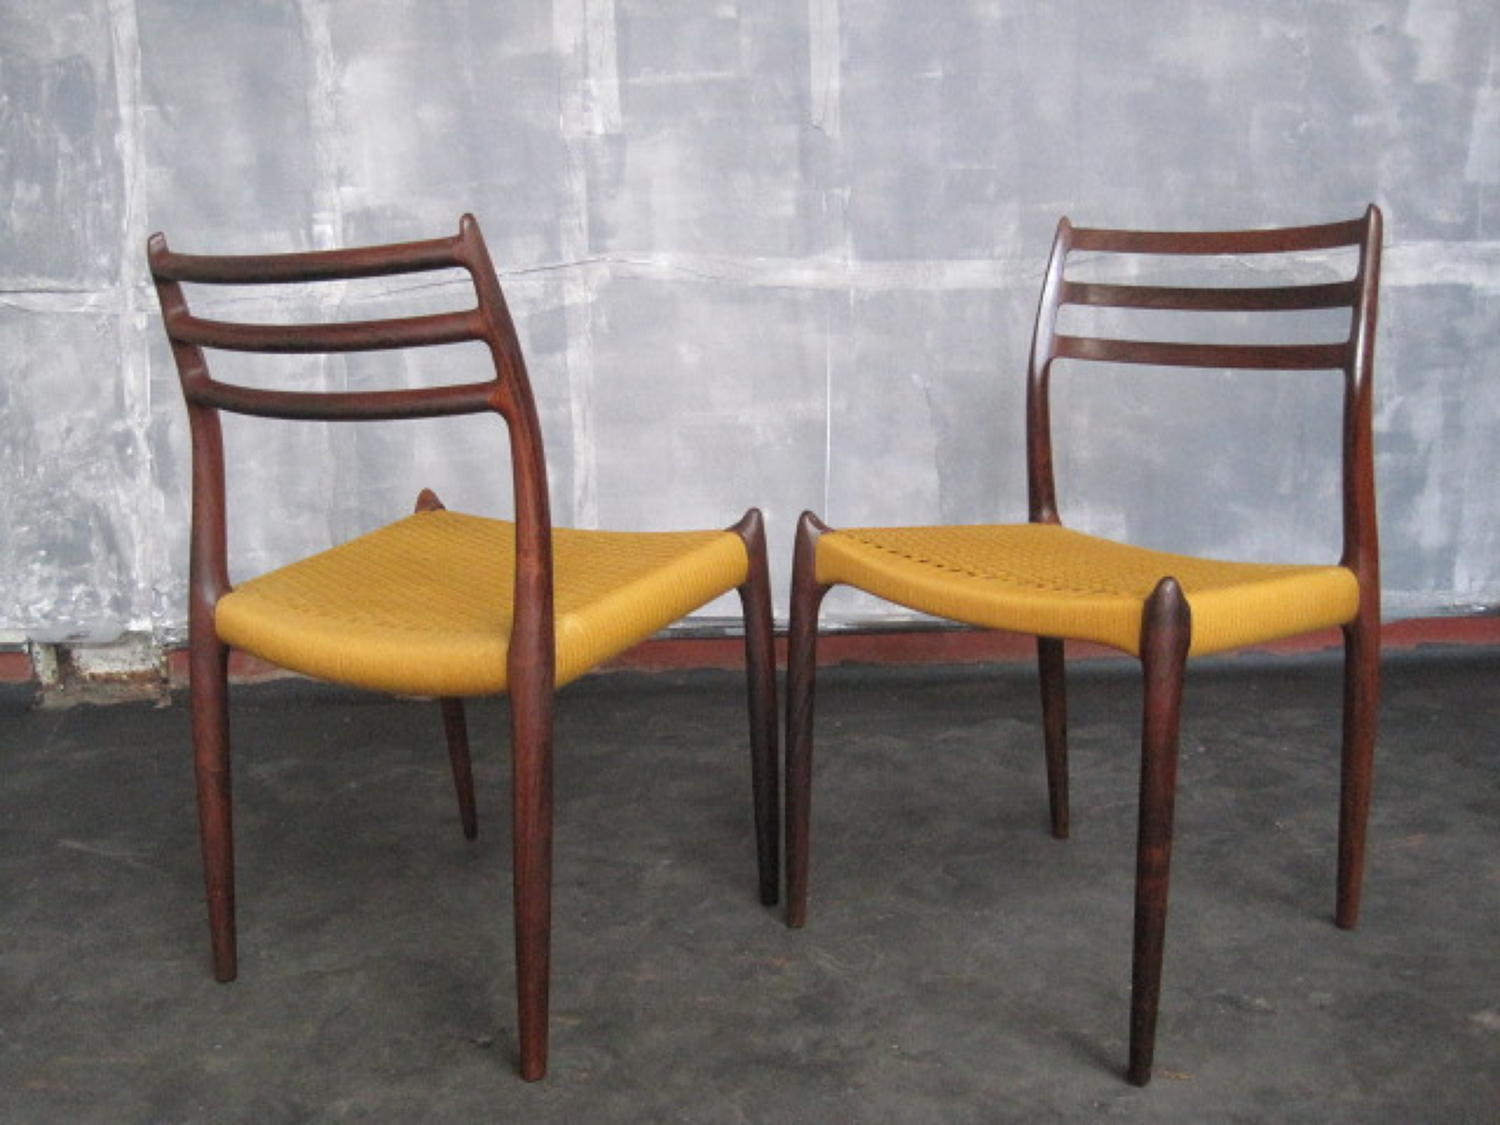 A pair of Niels Moller rosewood chairs